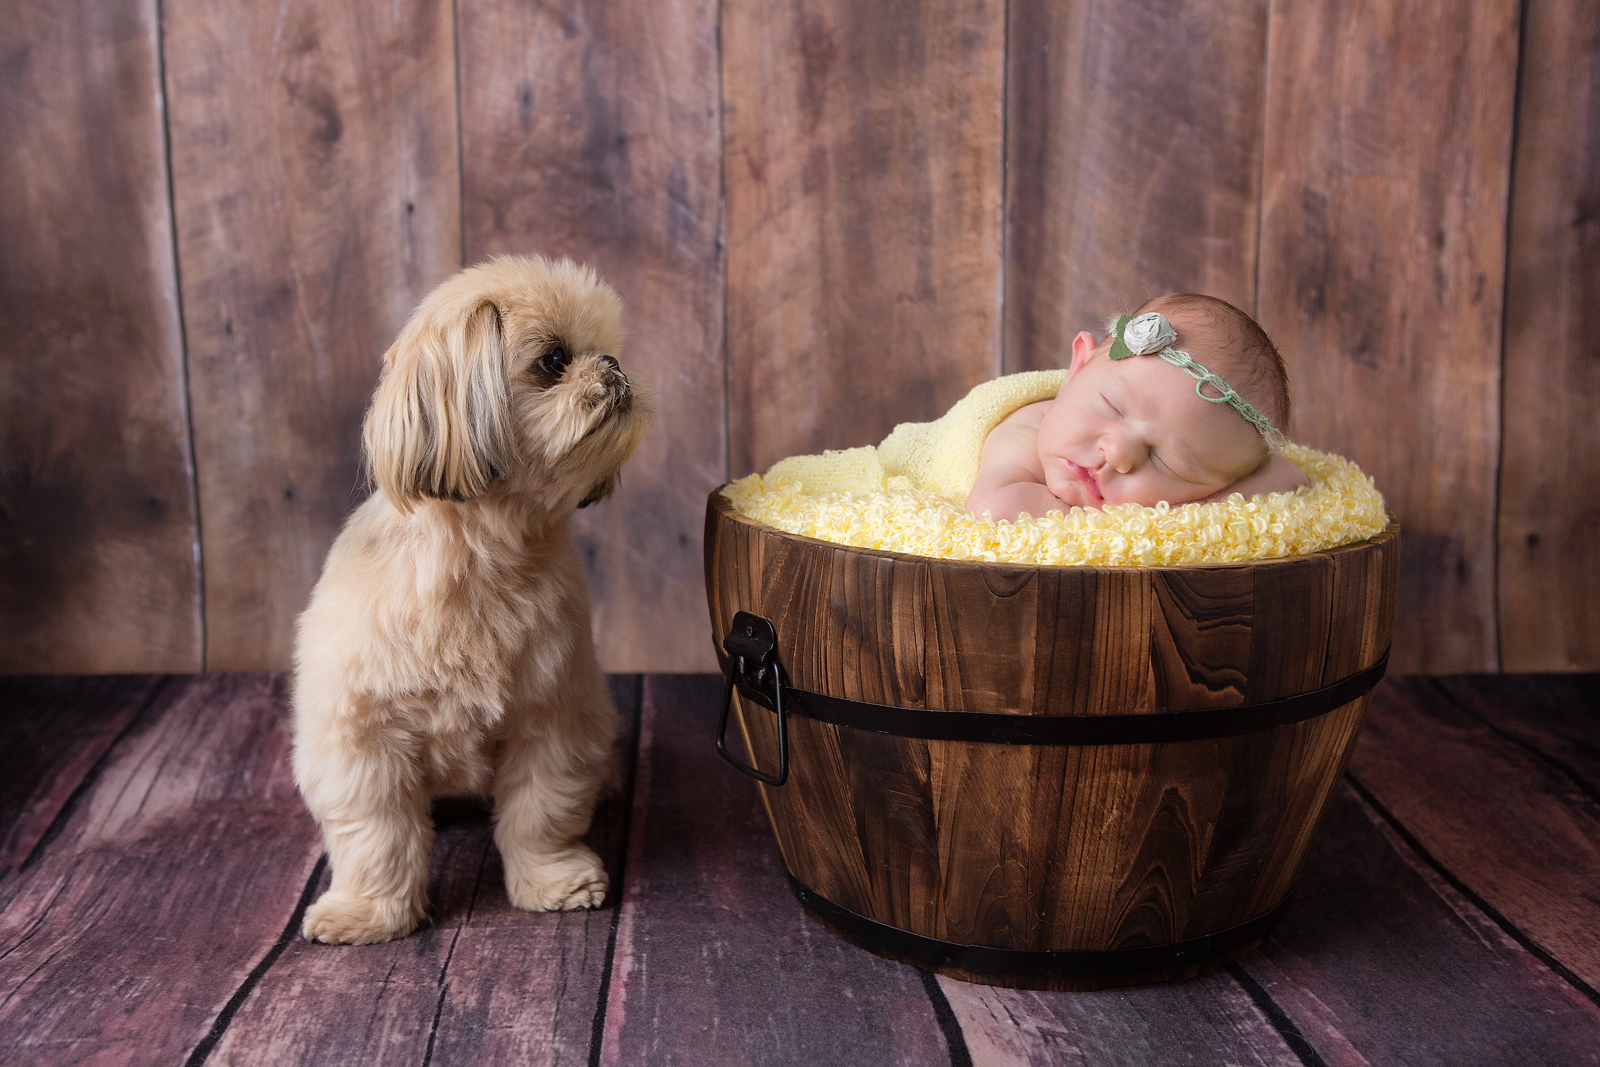 Photos Of Dogs Pet Photography